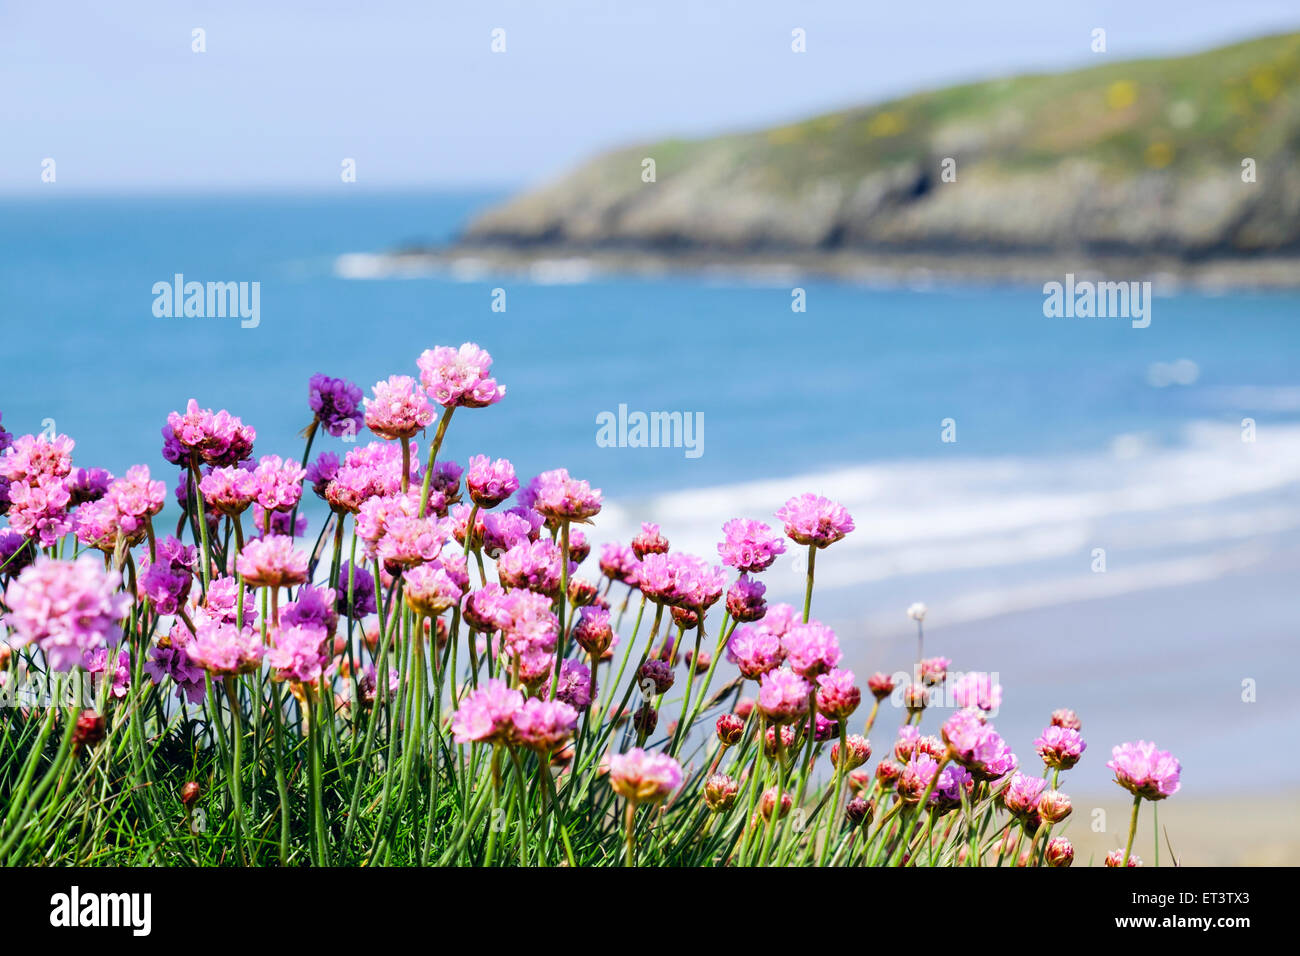 Sea pinks or thrift flowers growing beside anglesey coast path above sea pinks or thrift flowers growing beside anglesey coast path above beach with blue sea in early summer season church bay anglesey wales uk mightylinksfo